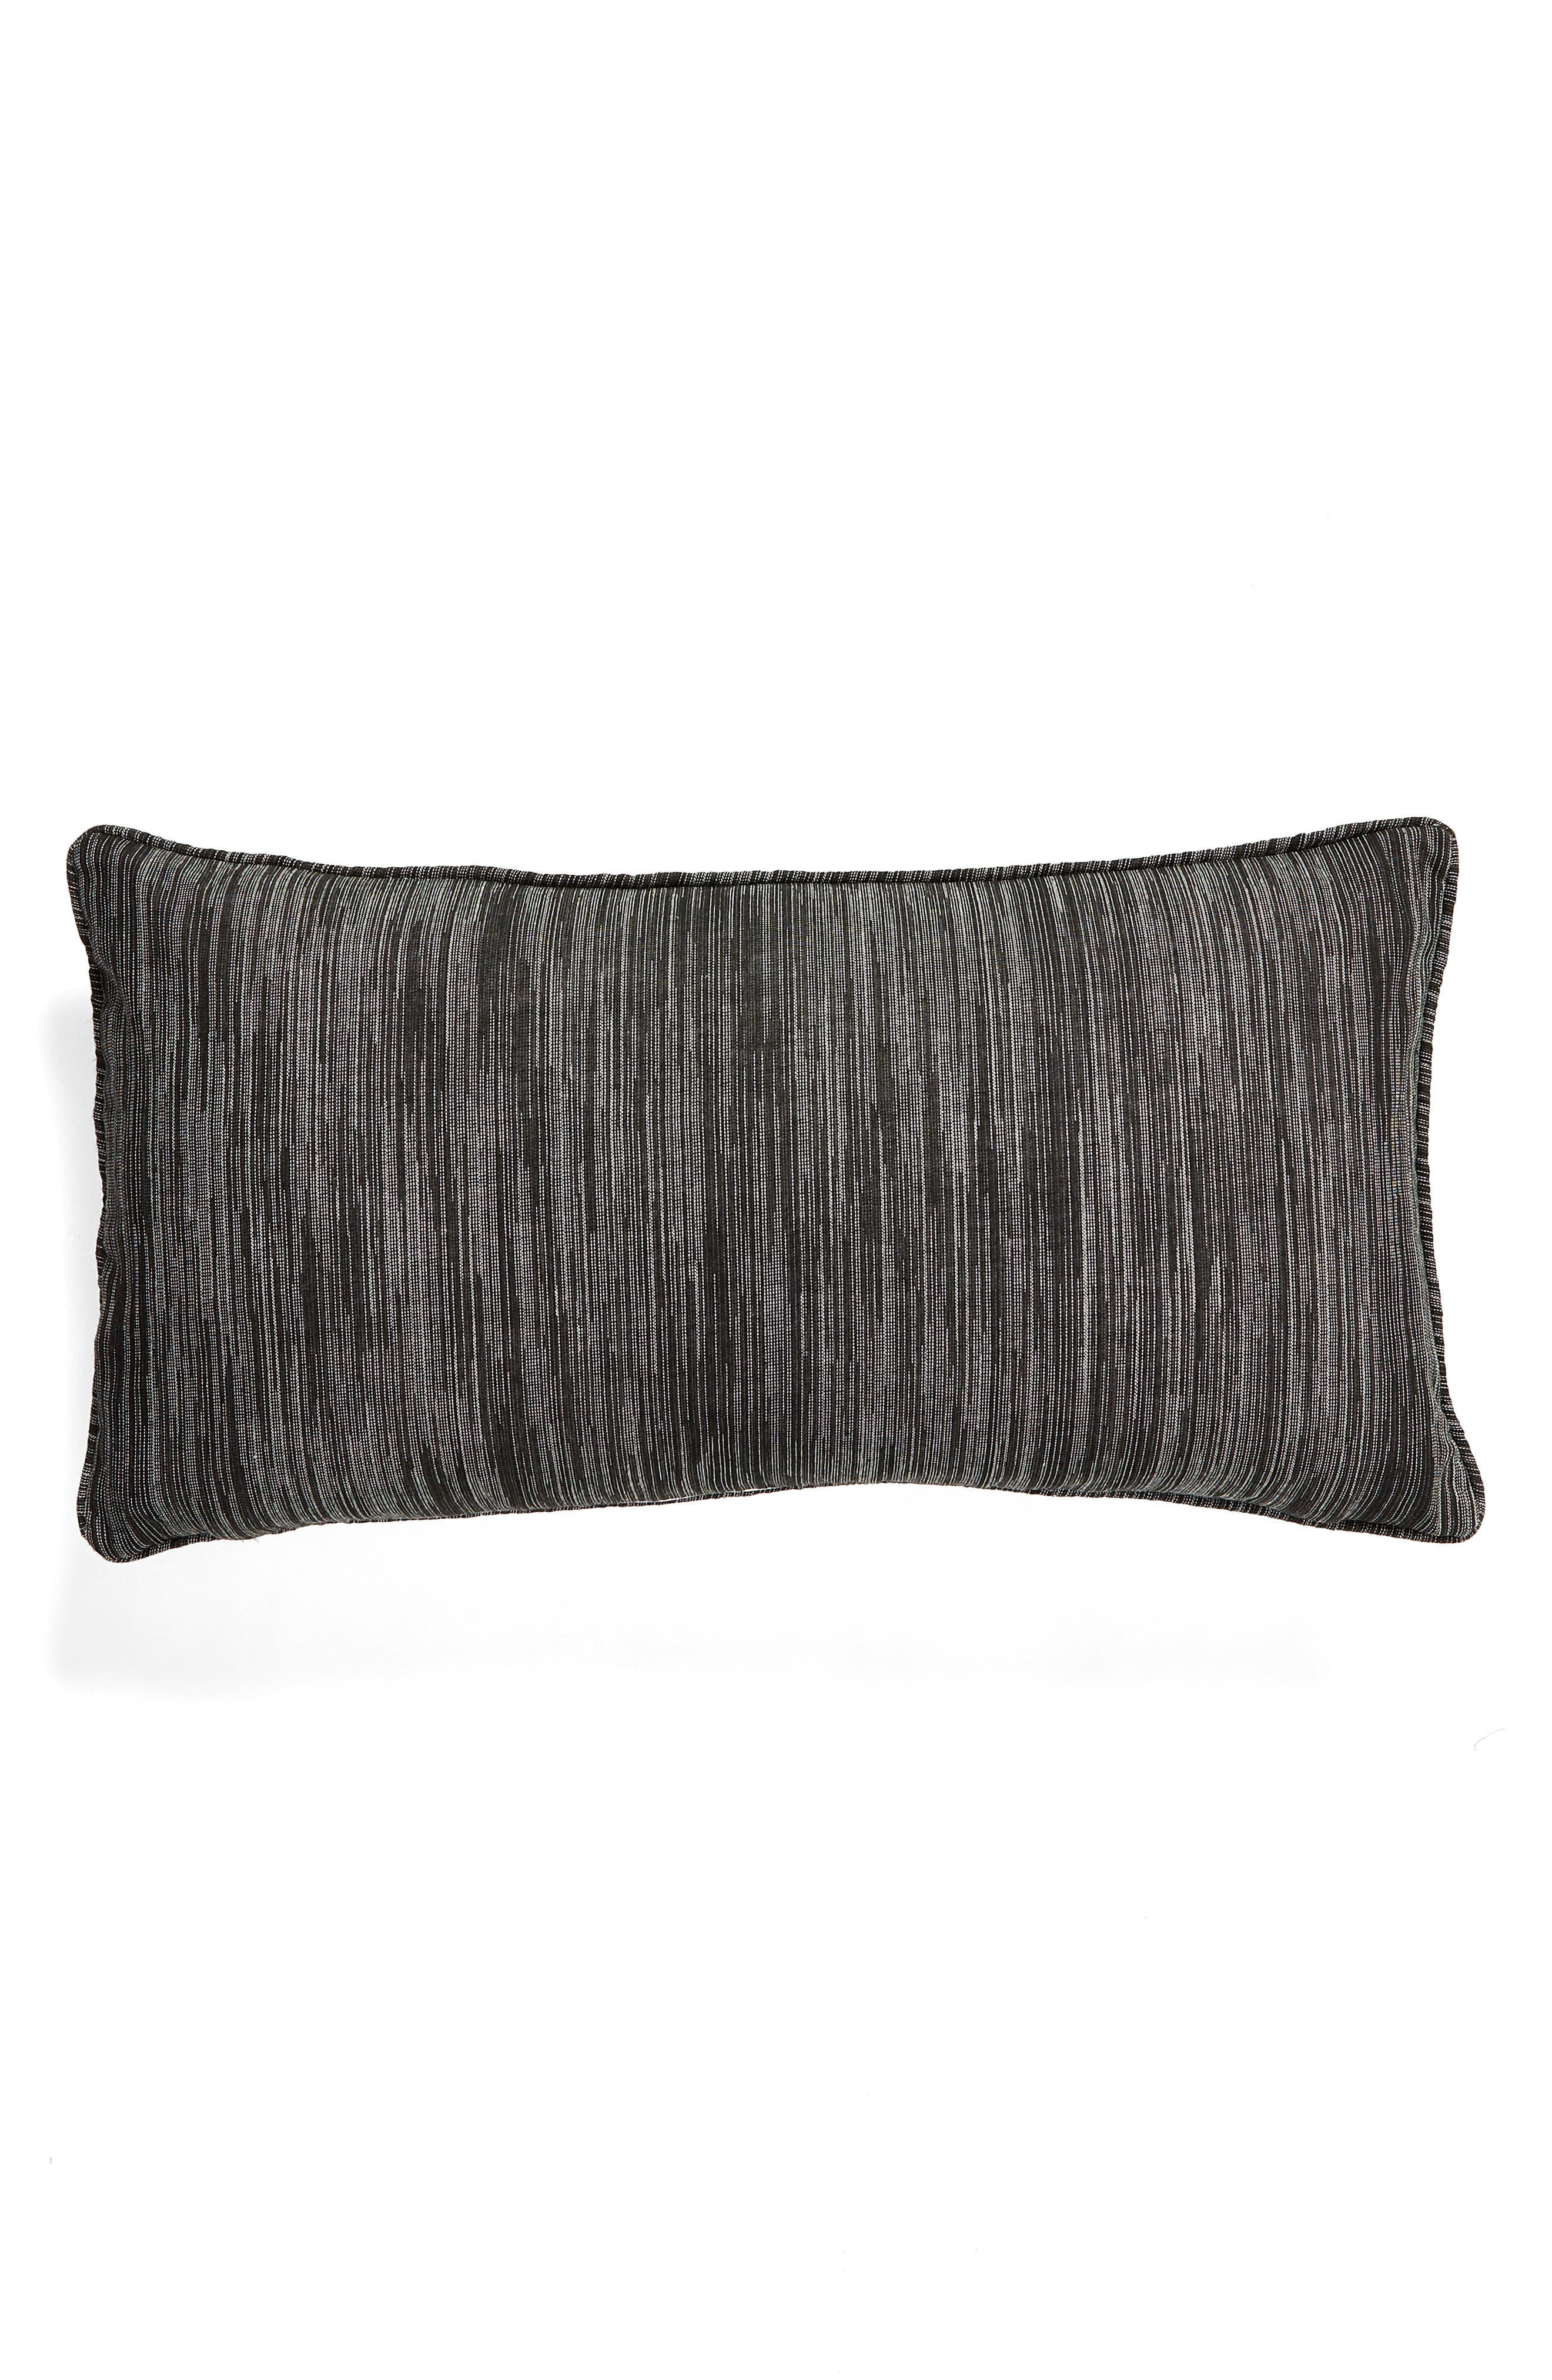 Quincy Pieced Embroidered Accent Pillow,                             Alternate thumbnail 2, color,                             GREY MULTI